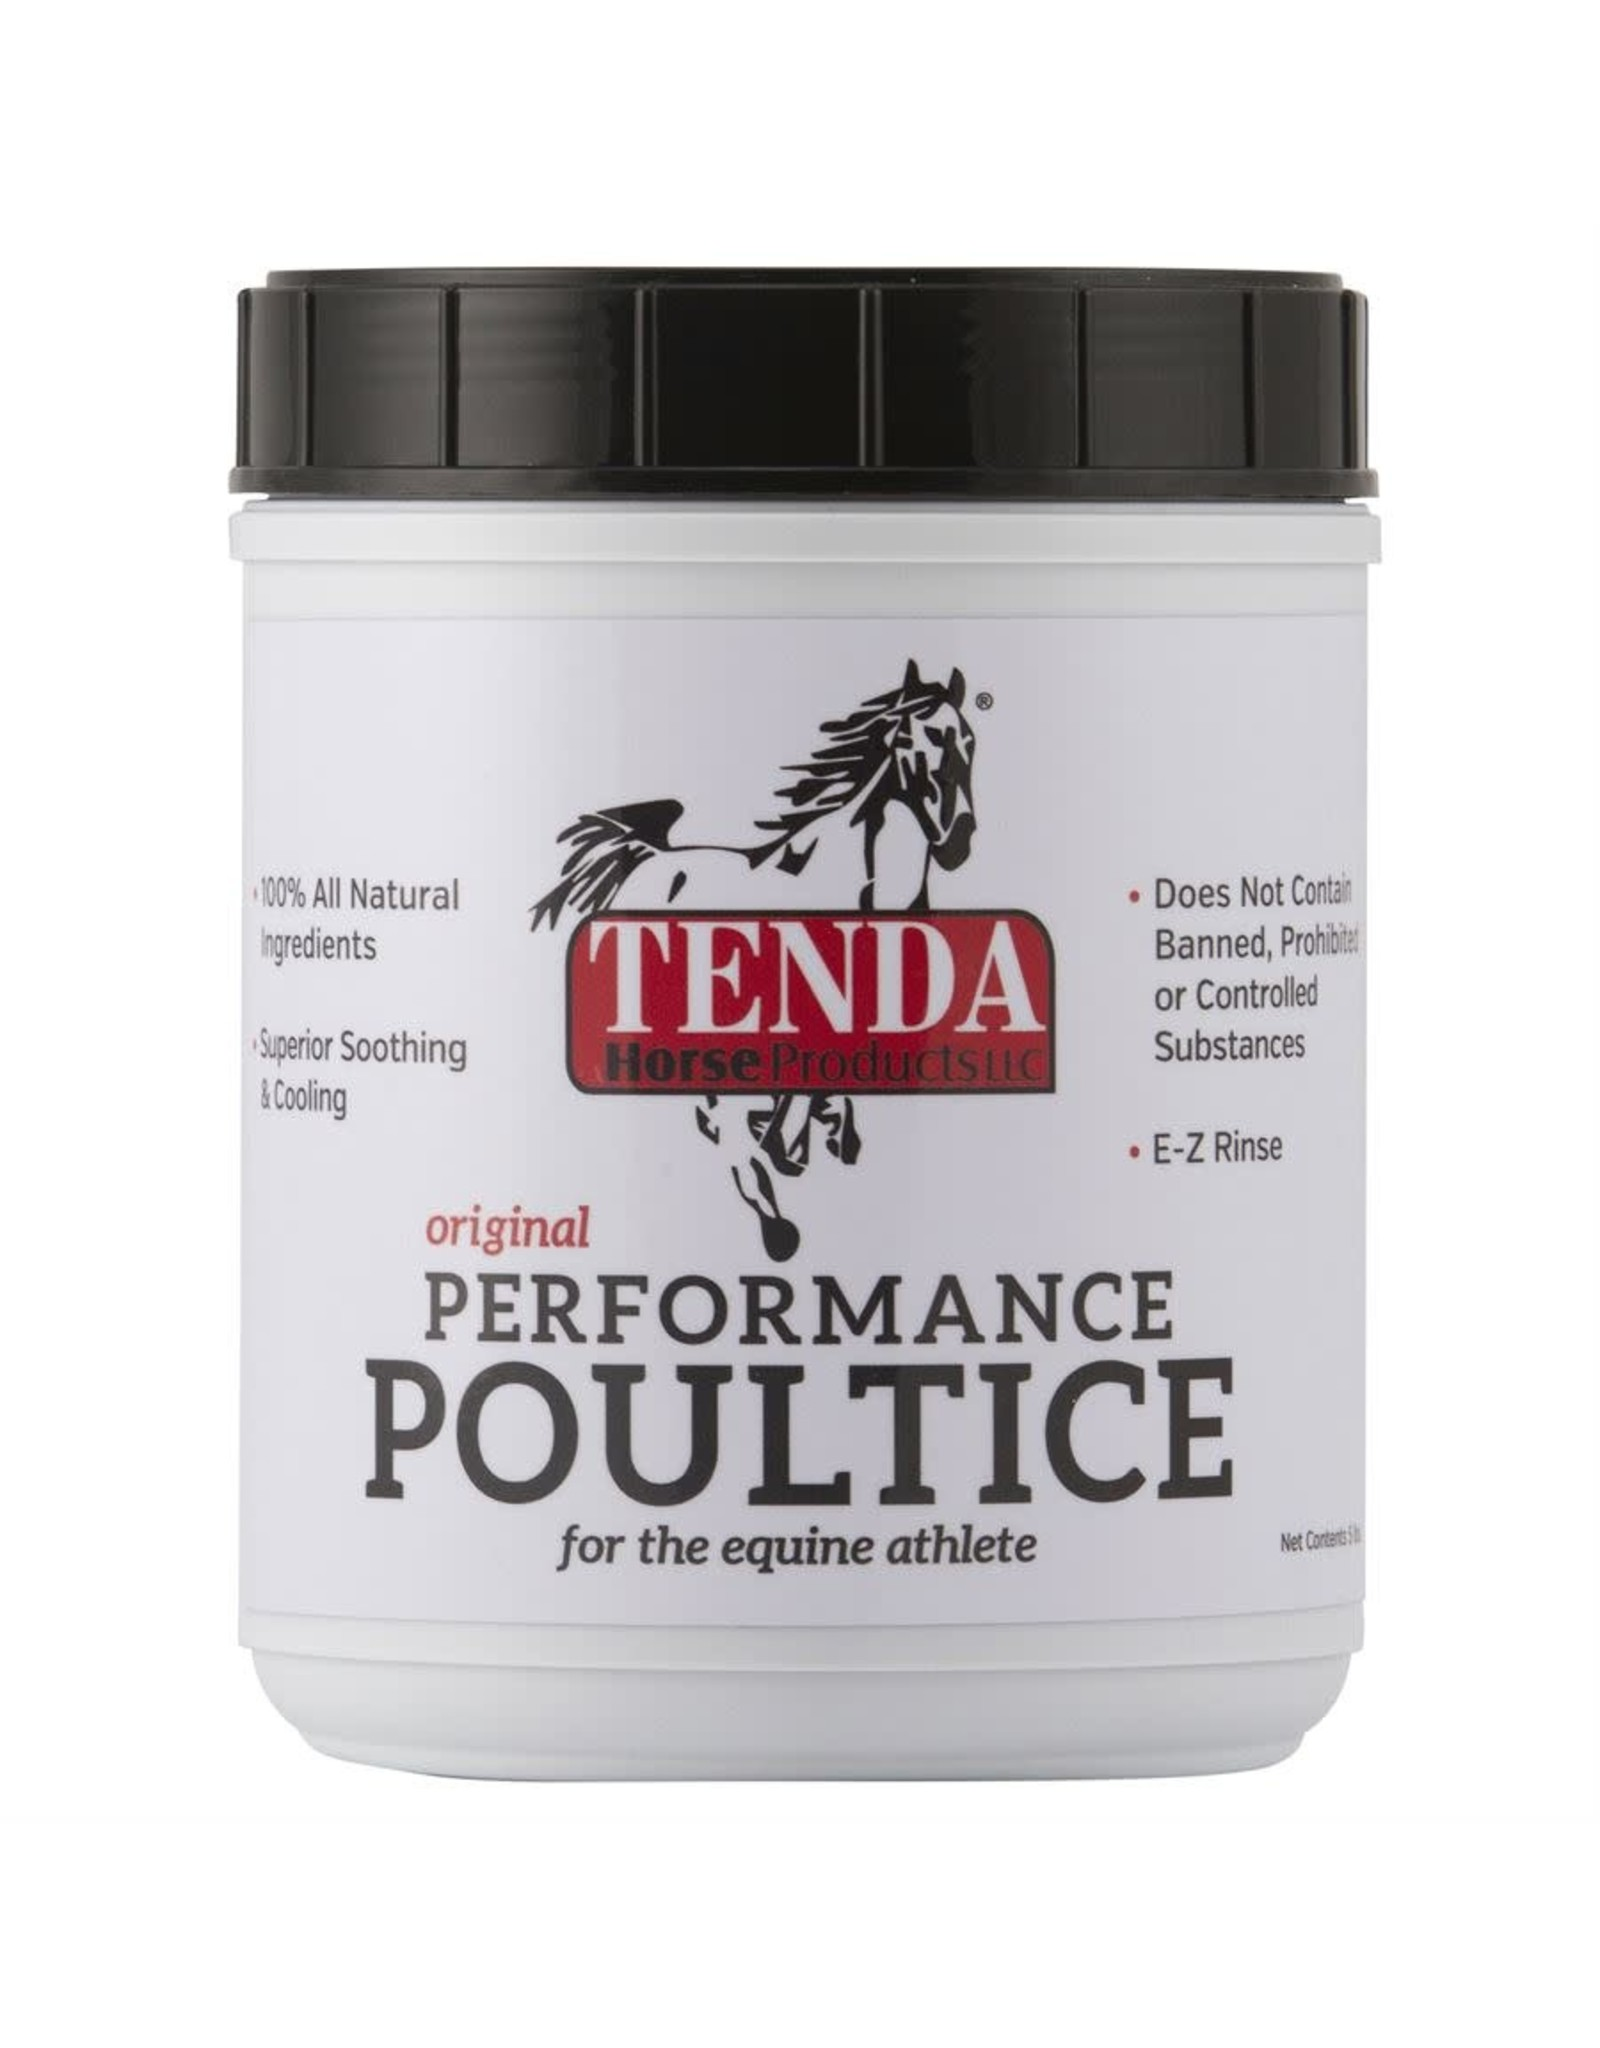 Tenda Performance Poultice 5lb